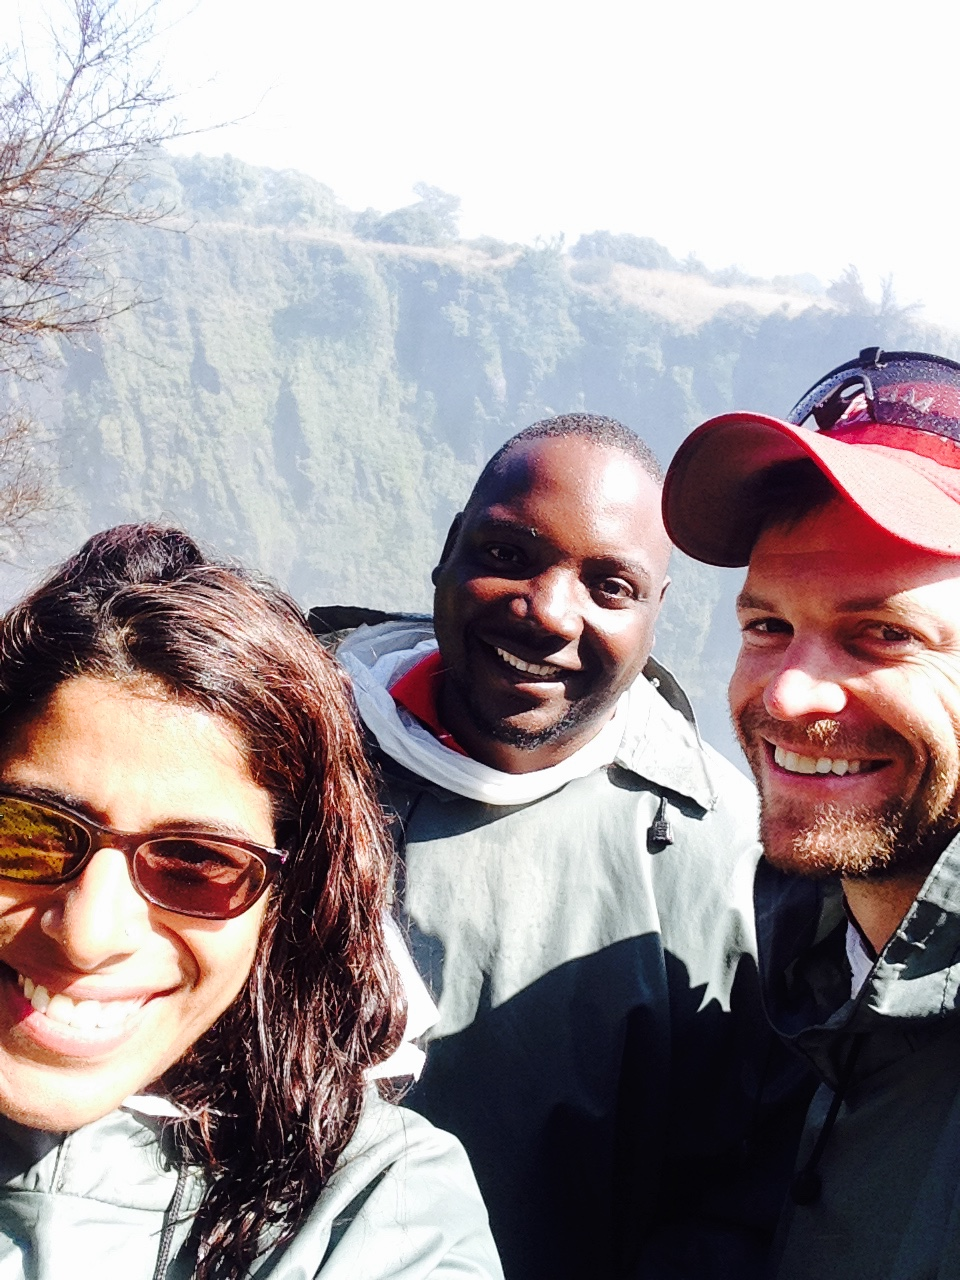 Shahzeen, Allan, and Drew - Happy and soaked at Victoria Falls, Zambia 2015